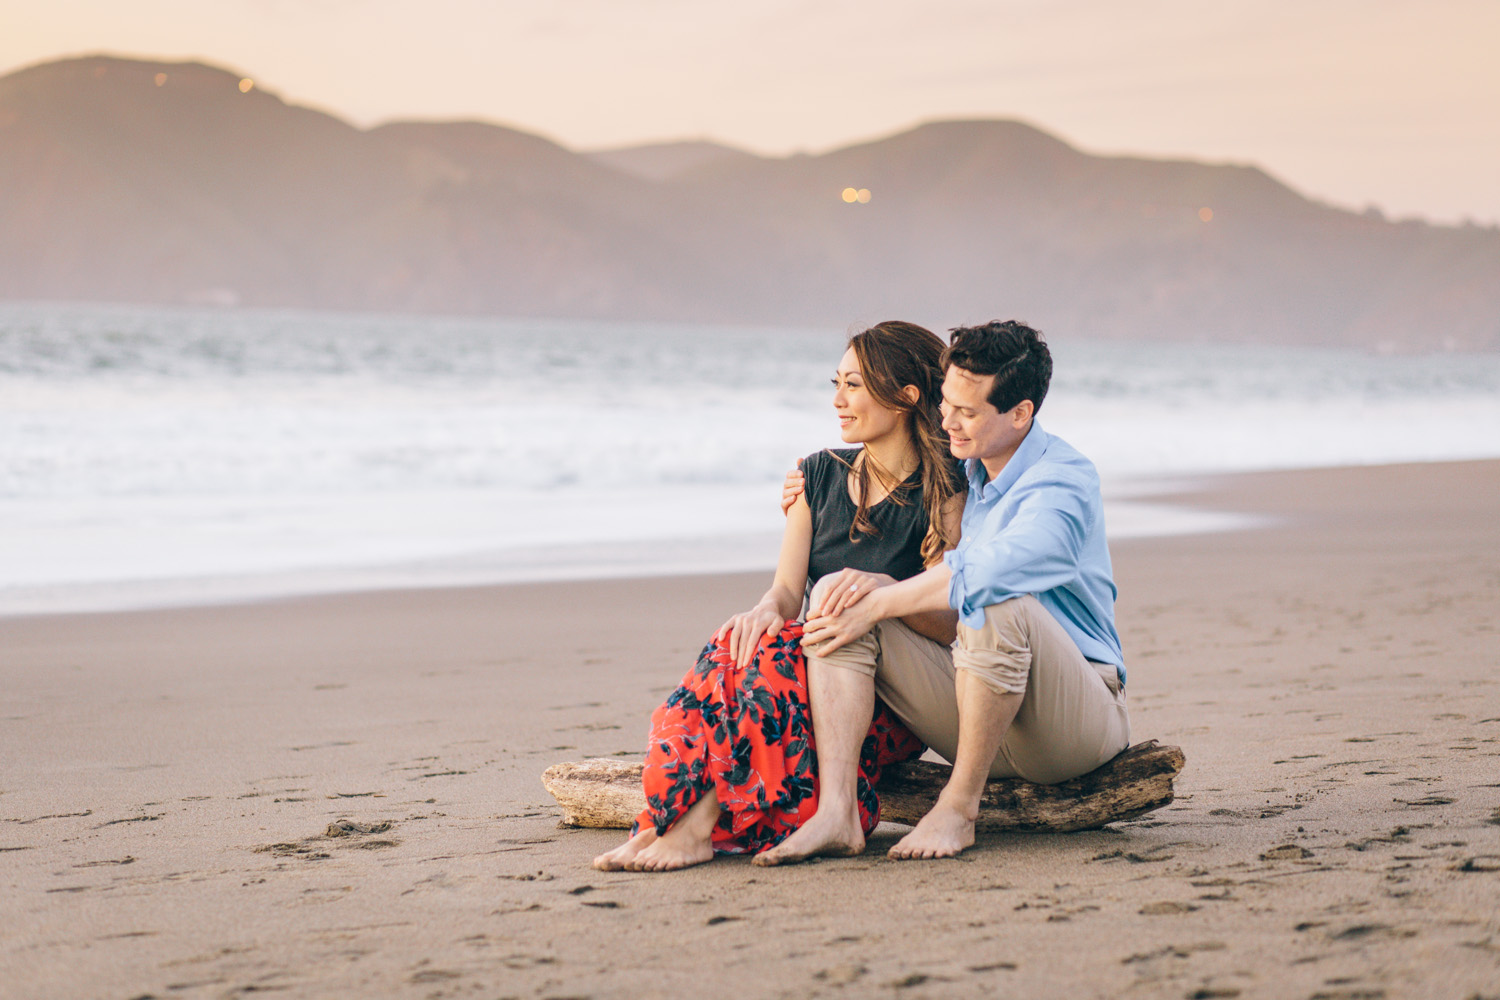 Engagement-Wedding-Photographer-San-Francisco-Engagement-session-Baker-Beach-Palace-of-Fine-Arts-and-Legion-of-Honor-byJBJ-Pictures-19.jpg